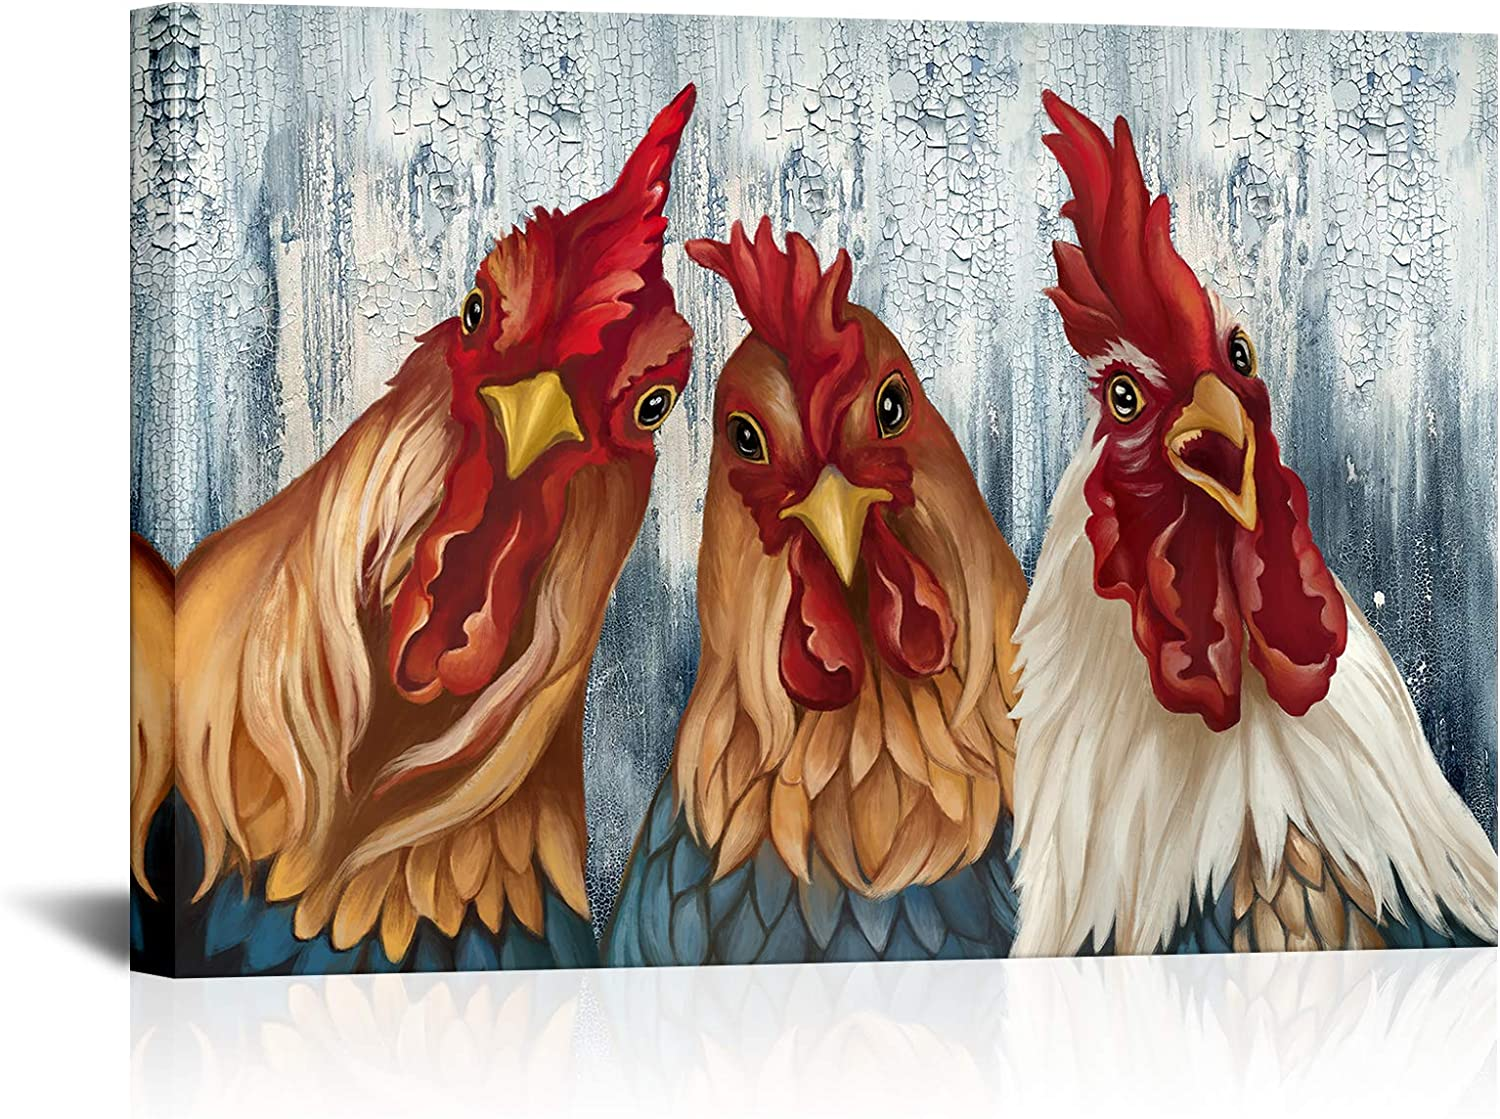 Chicken Kitchen Canvas Wall Decor Funny Rooster and Hen Picture Print Animal Painting Artwork Rustic Home Art Farmhouse Wall Art Living Room Bathroom Kids Room Decoration24 x36